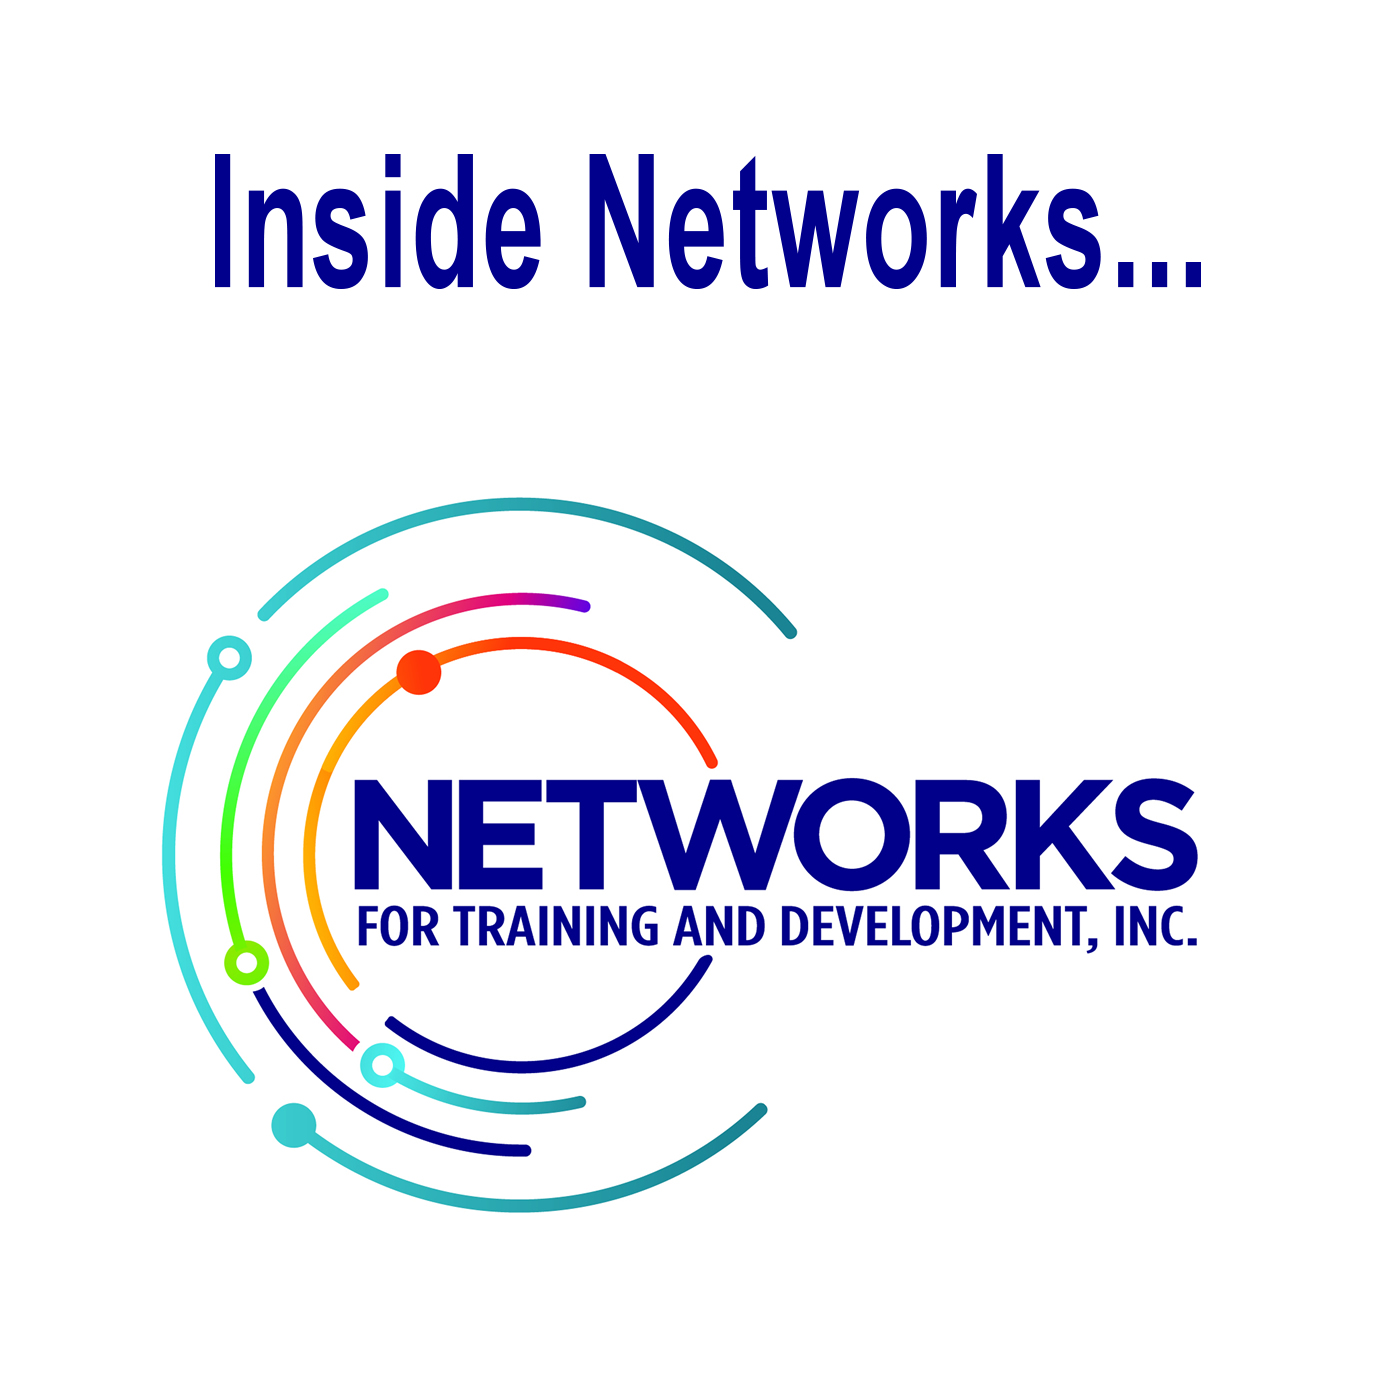 TEXT:  Inside Networks [IMAGE:  Networks logo]